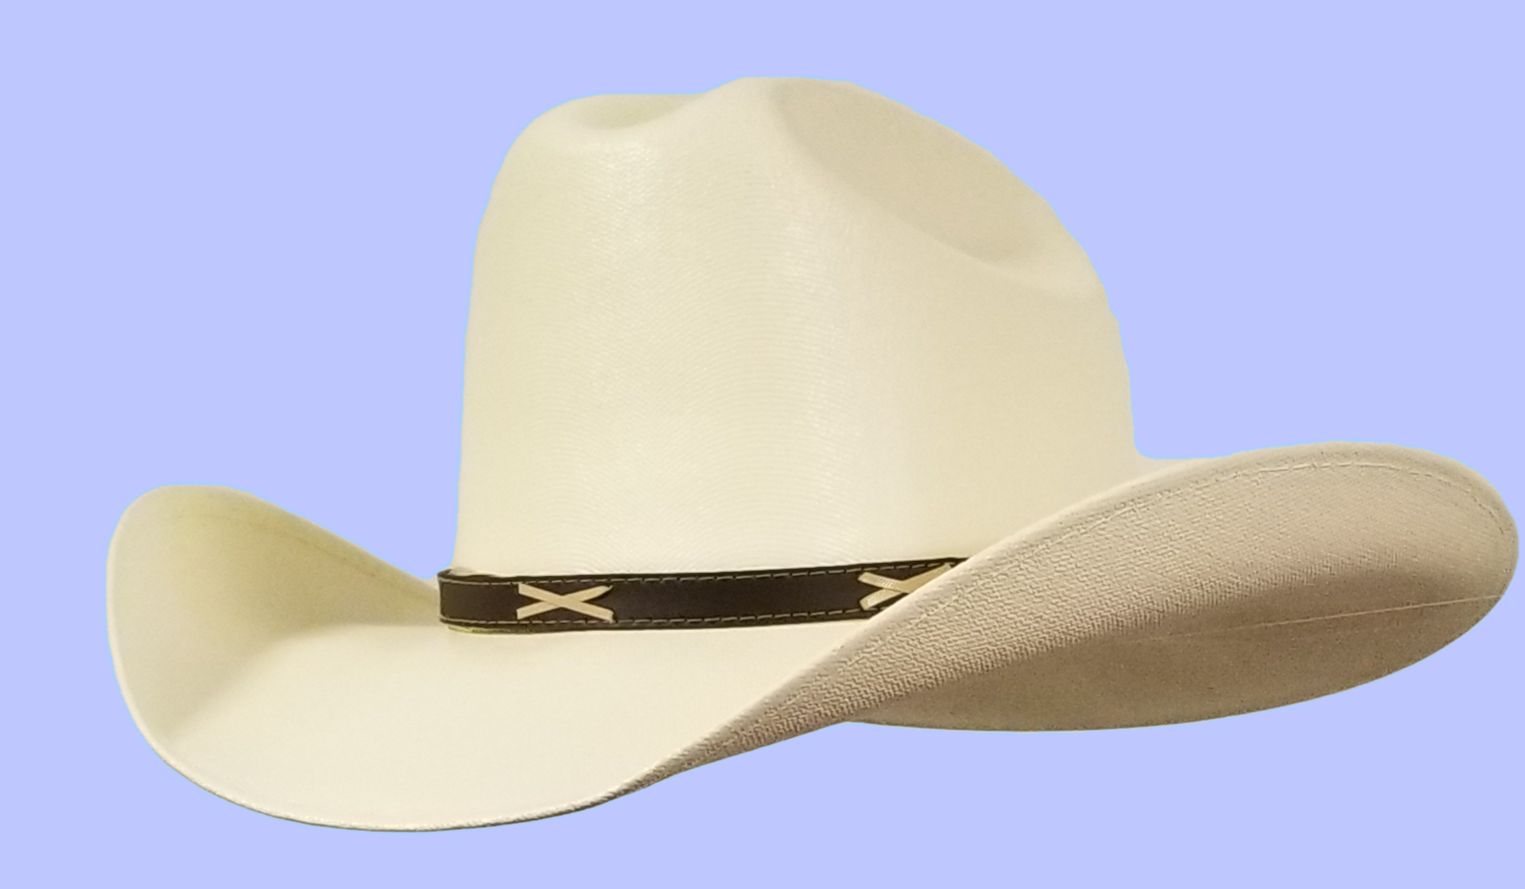 Gone Country's Brad hat is hightly water resistant